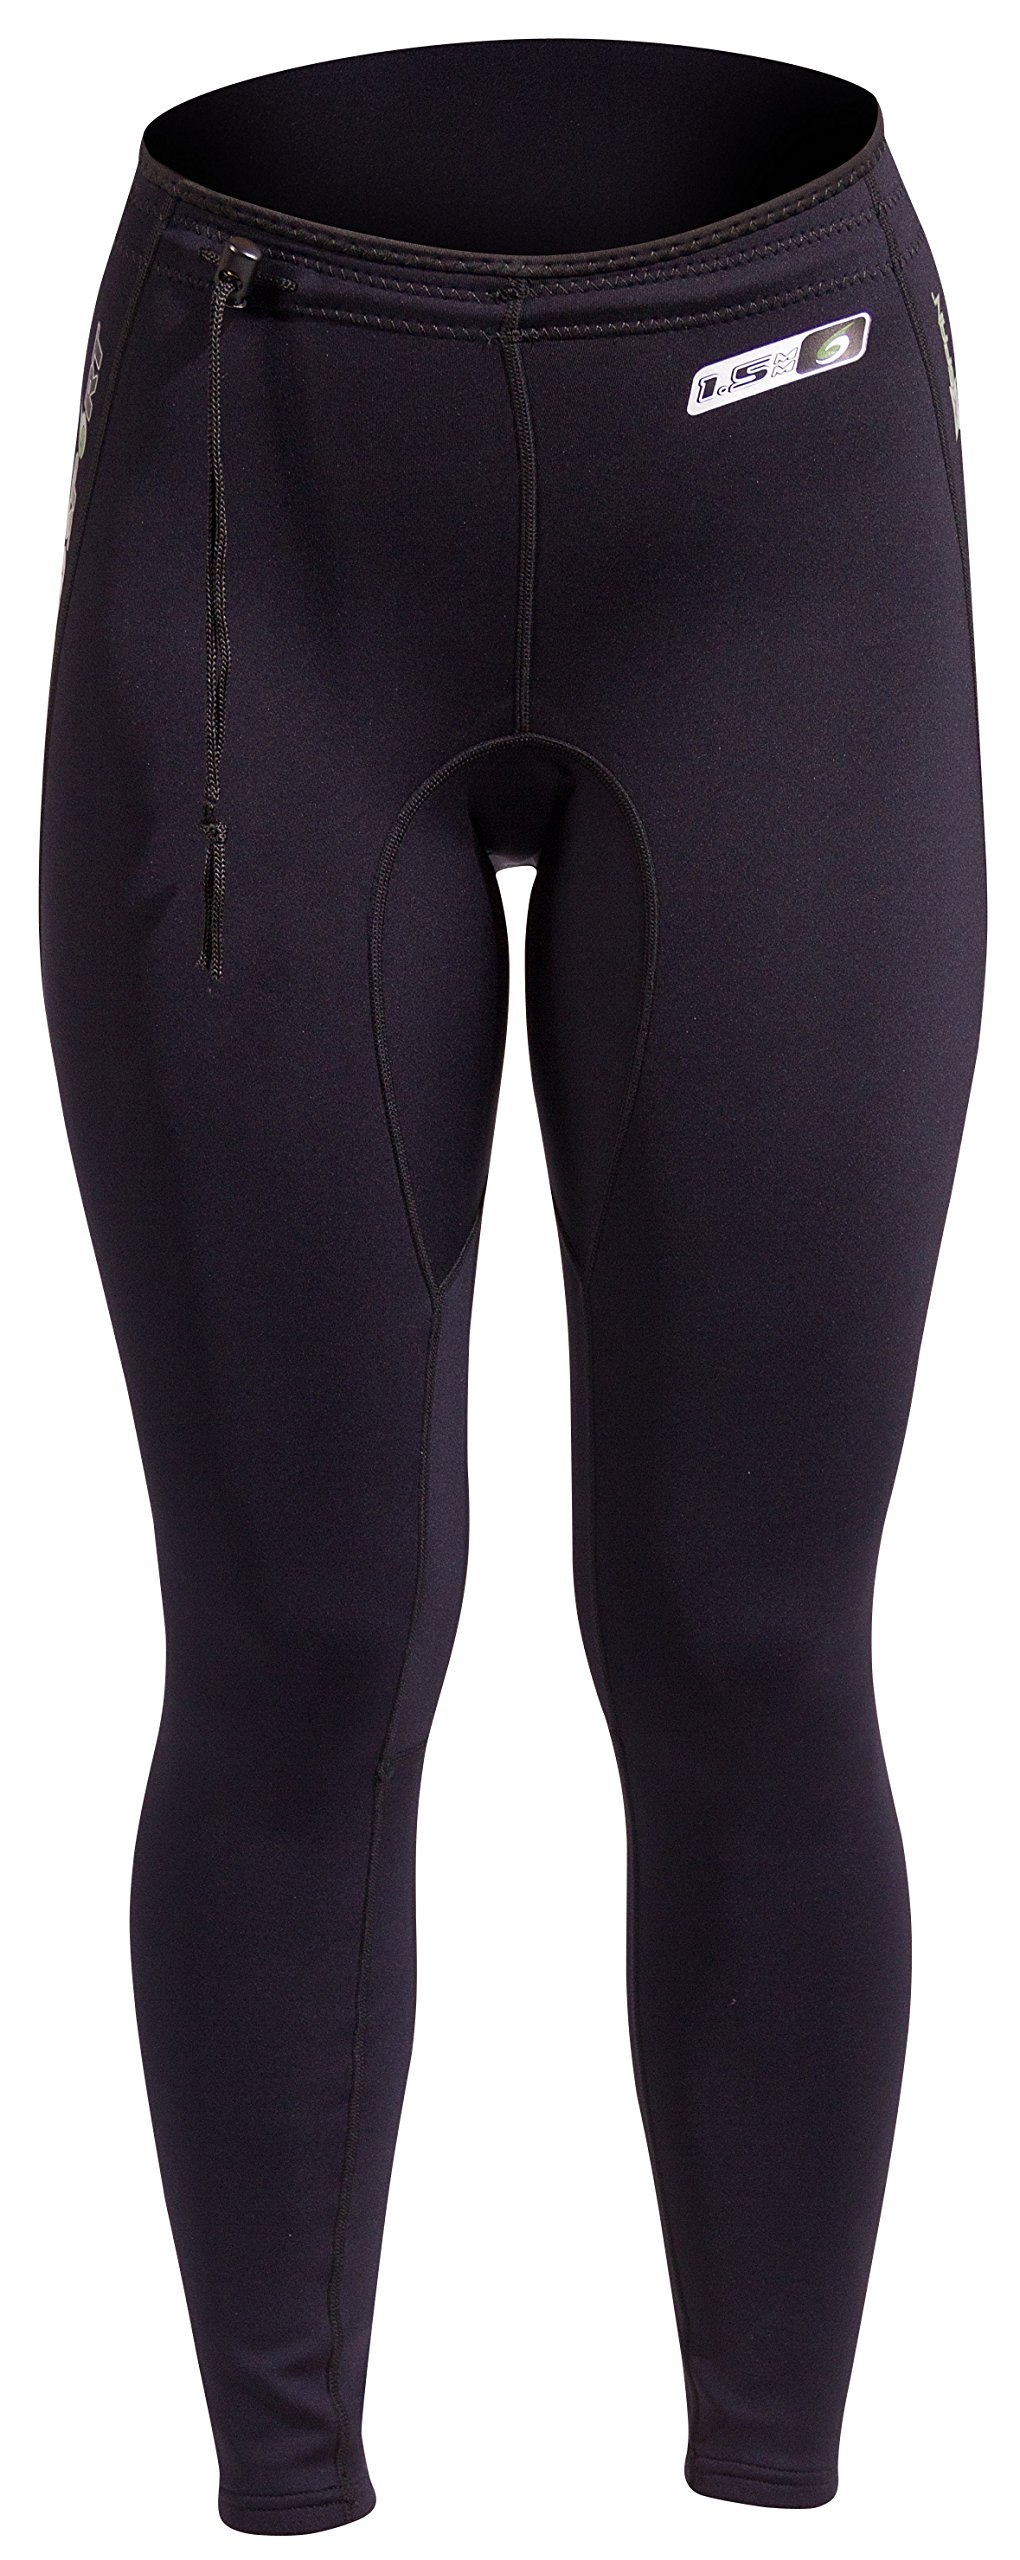 NeoSport Wetsuits XSPAN Pants, Black, Medium - Diving, Snorkeling & Wakeboarding by Neo-Sport